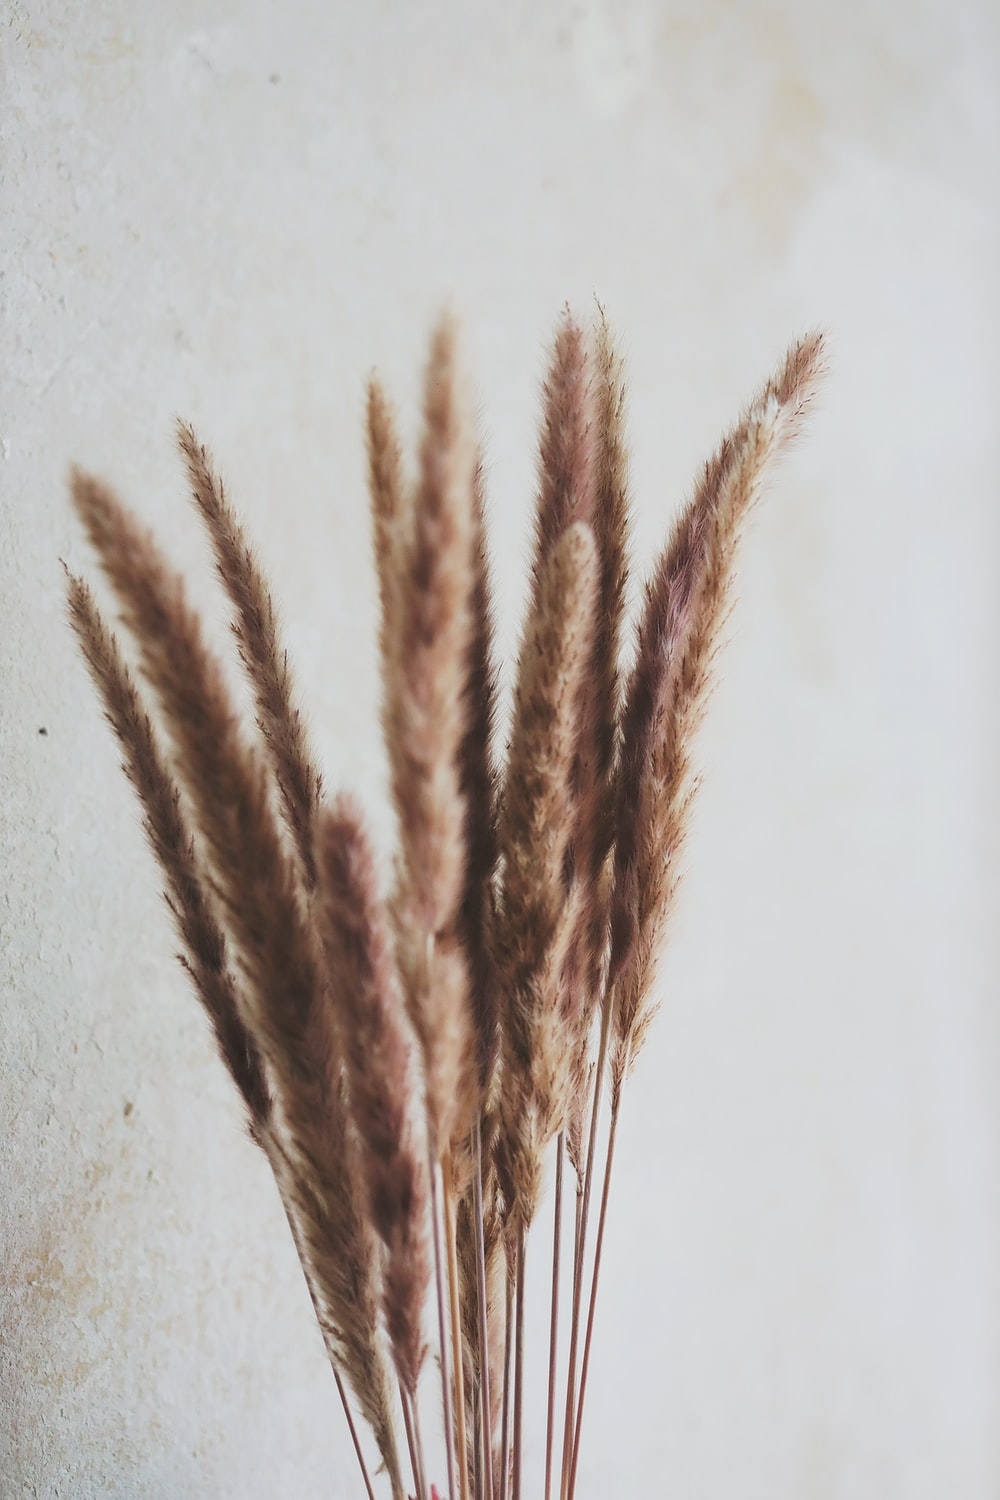 brown wheat on white surface